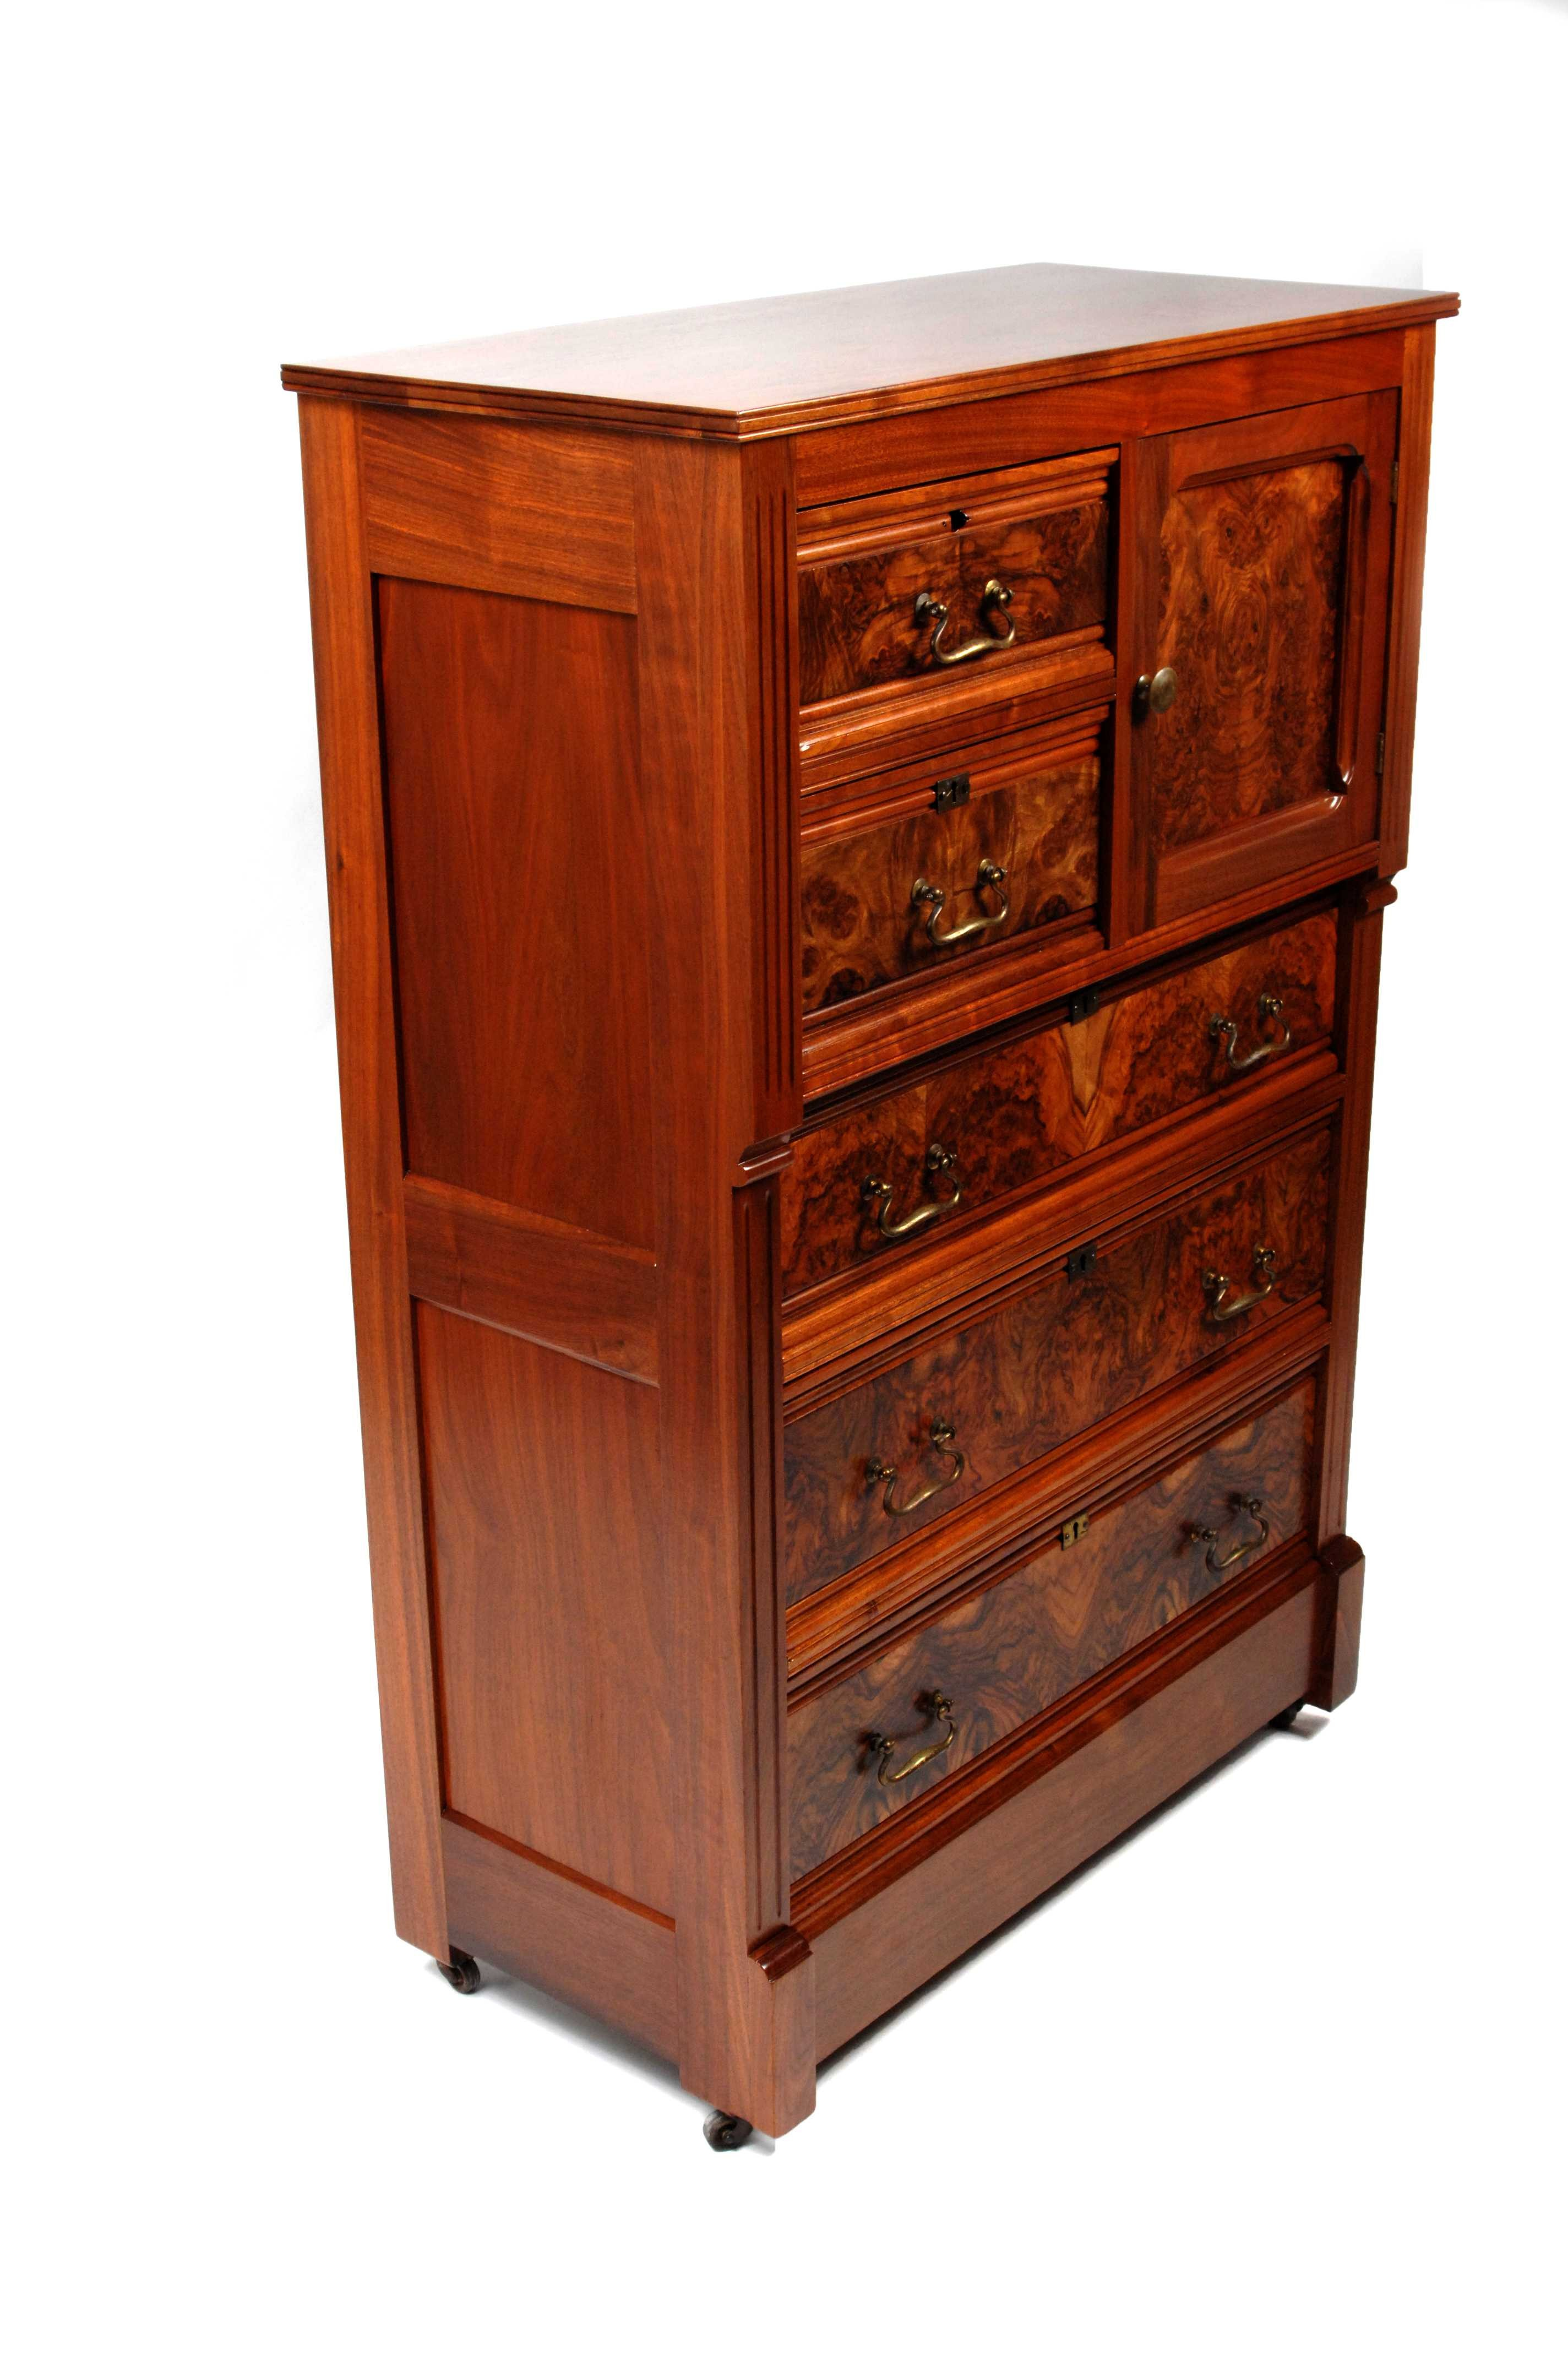 Wood Furniture Refinishing Near Me Top Home Information